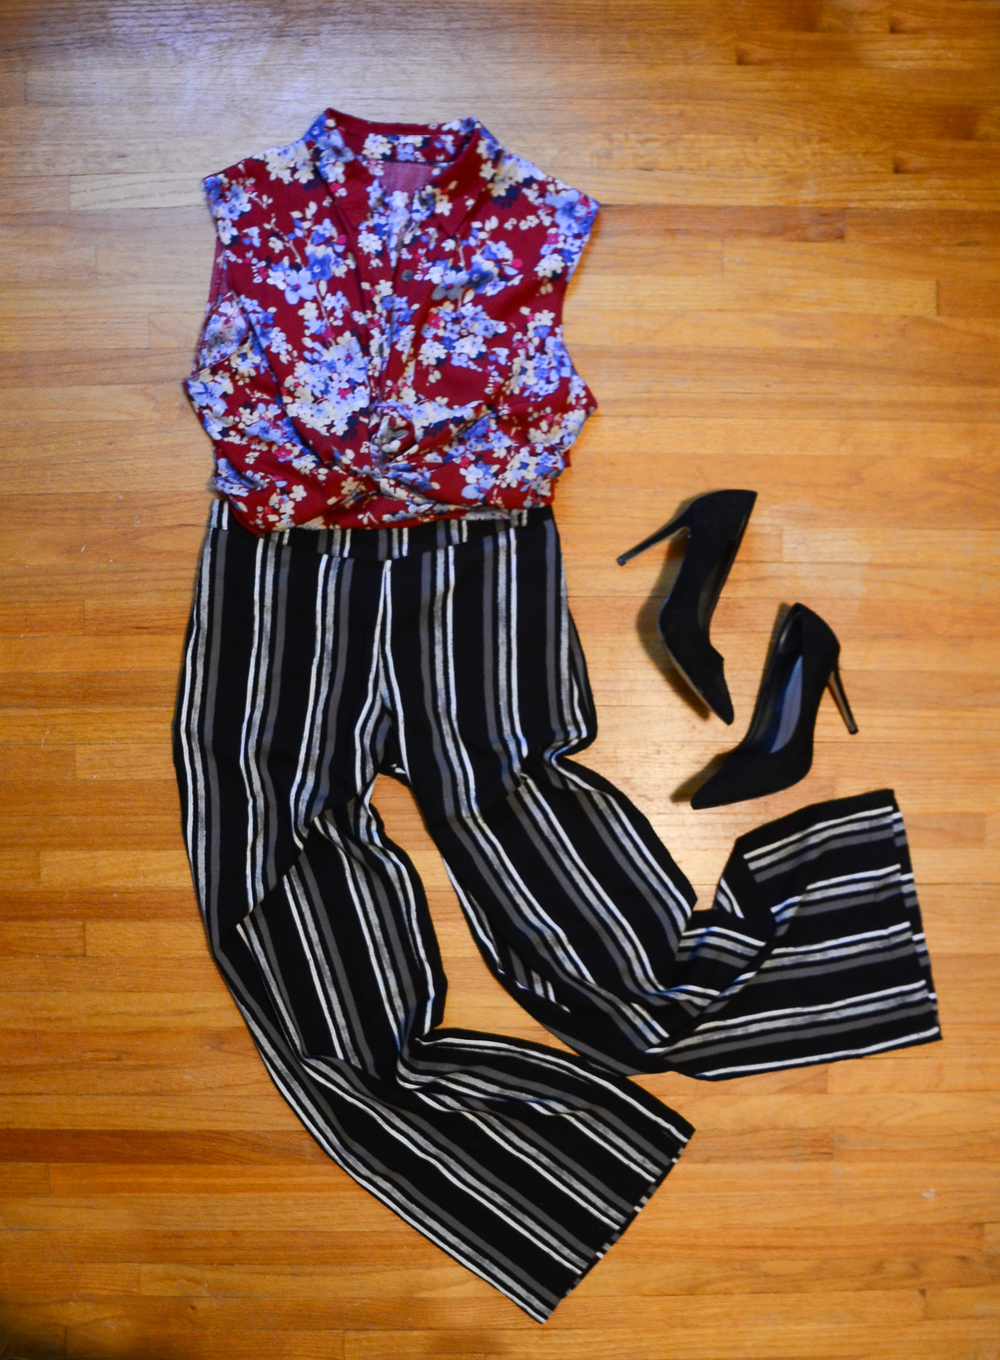 A more work-appropriate look. Wide-leg striped pants with a floral top.